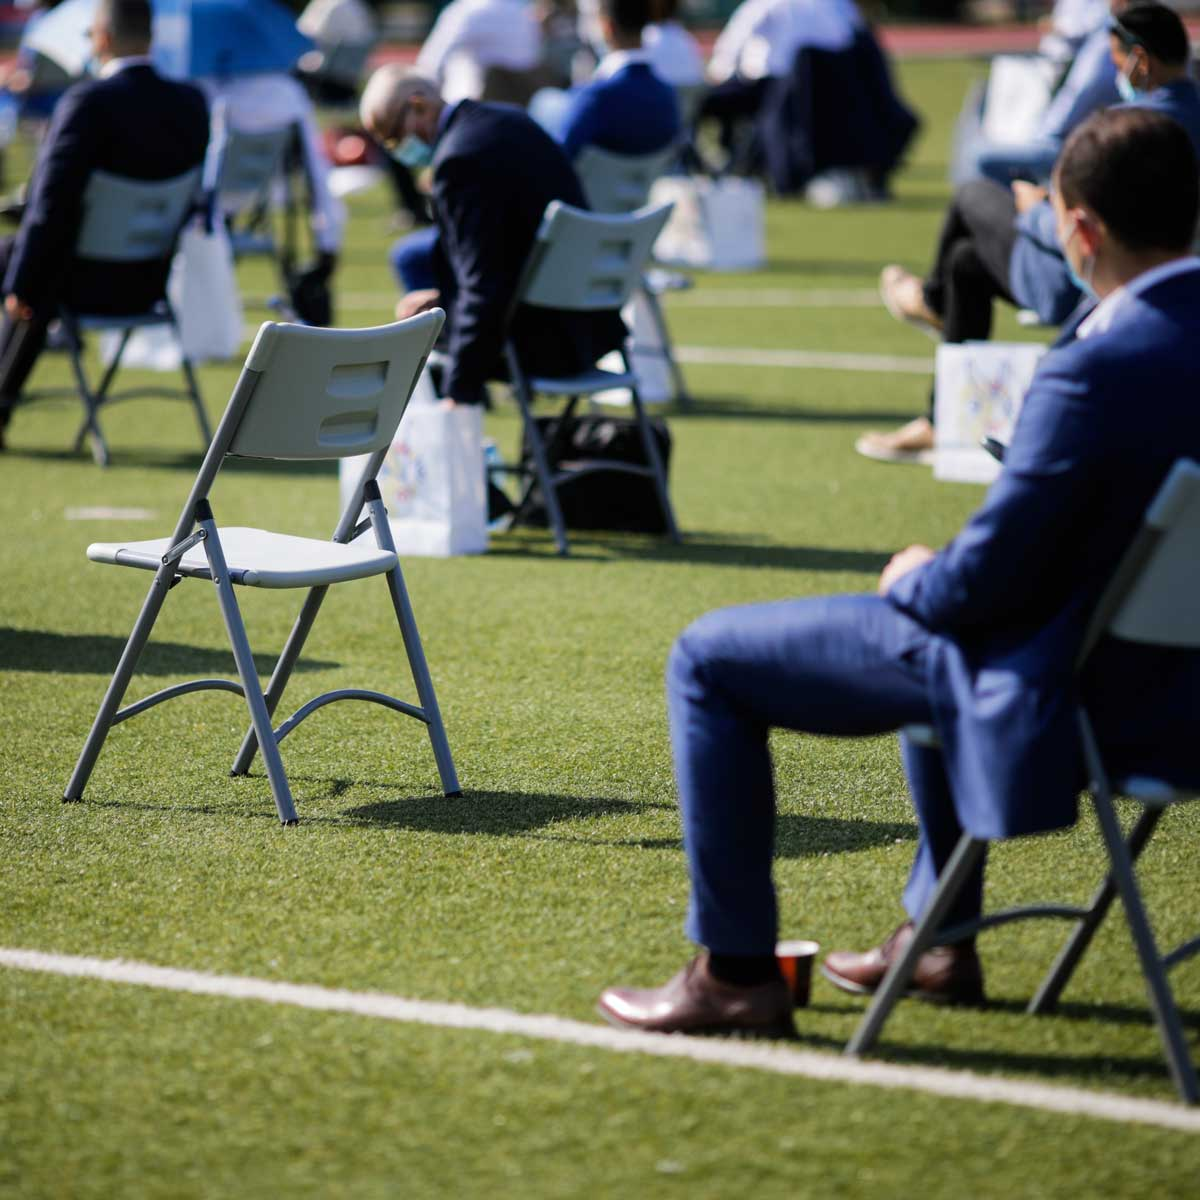 People sit on chairs apart one from another to maintain the social distance during the Covid-19 outbreak at an outdoor event on the turf of a stadium.